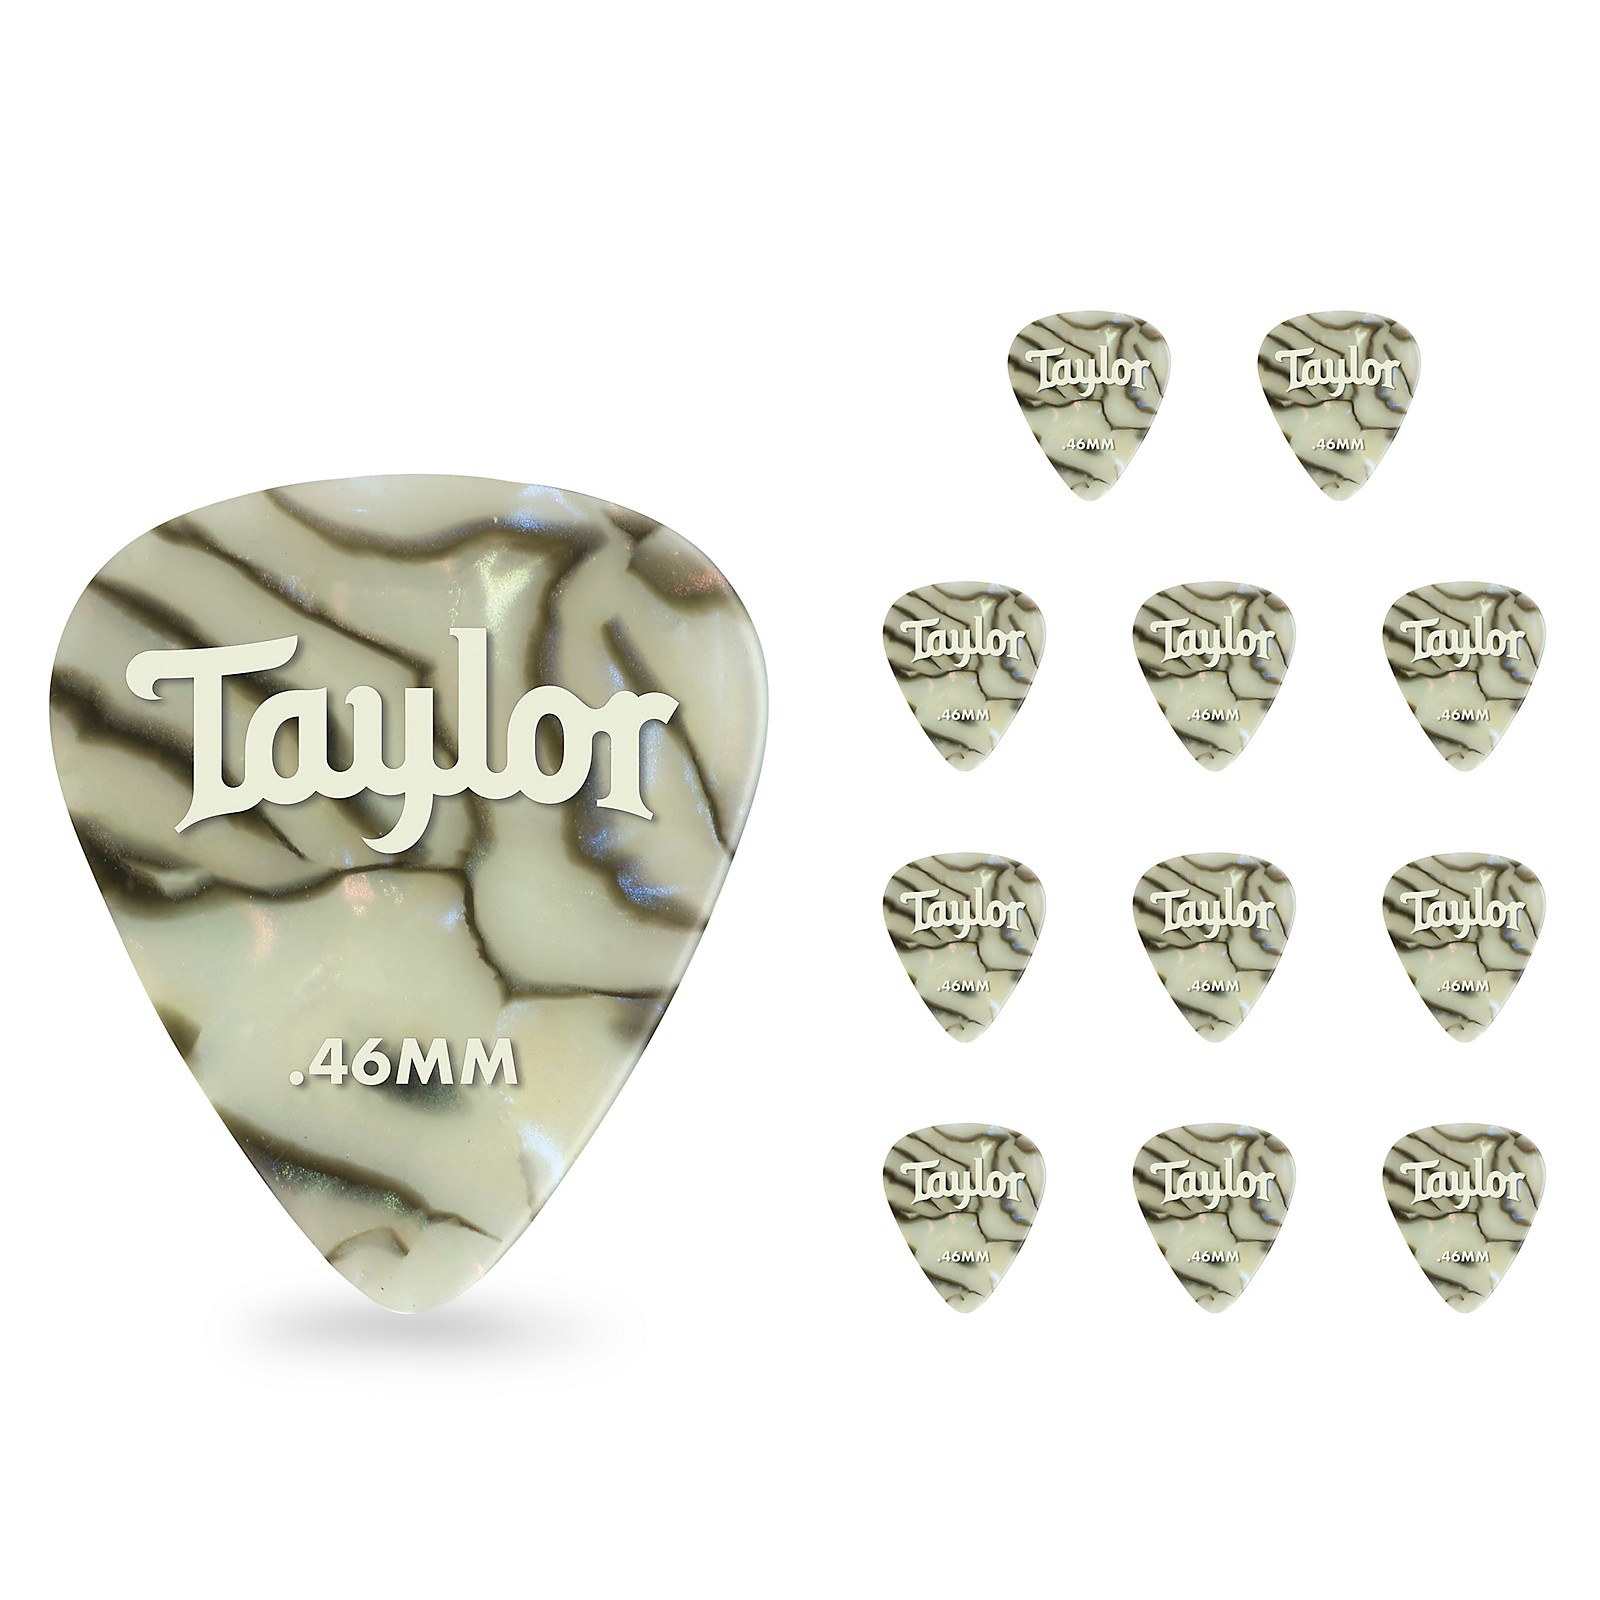 Taylor Celluloid 351 Picks, Abalone